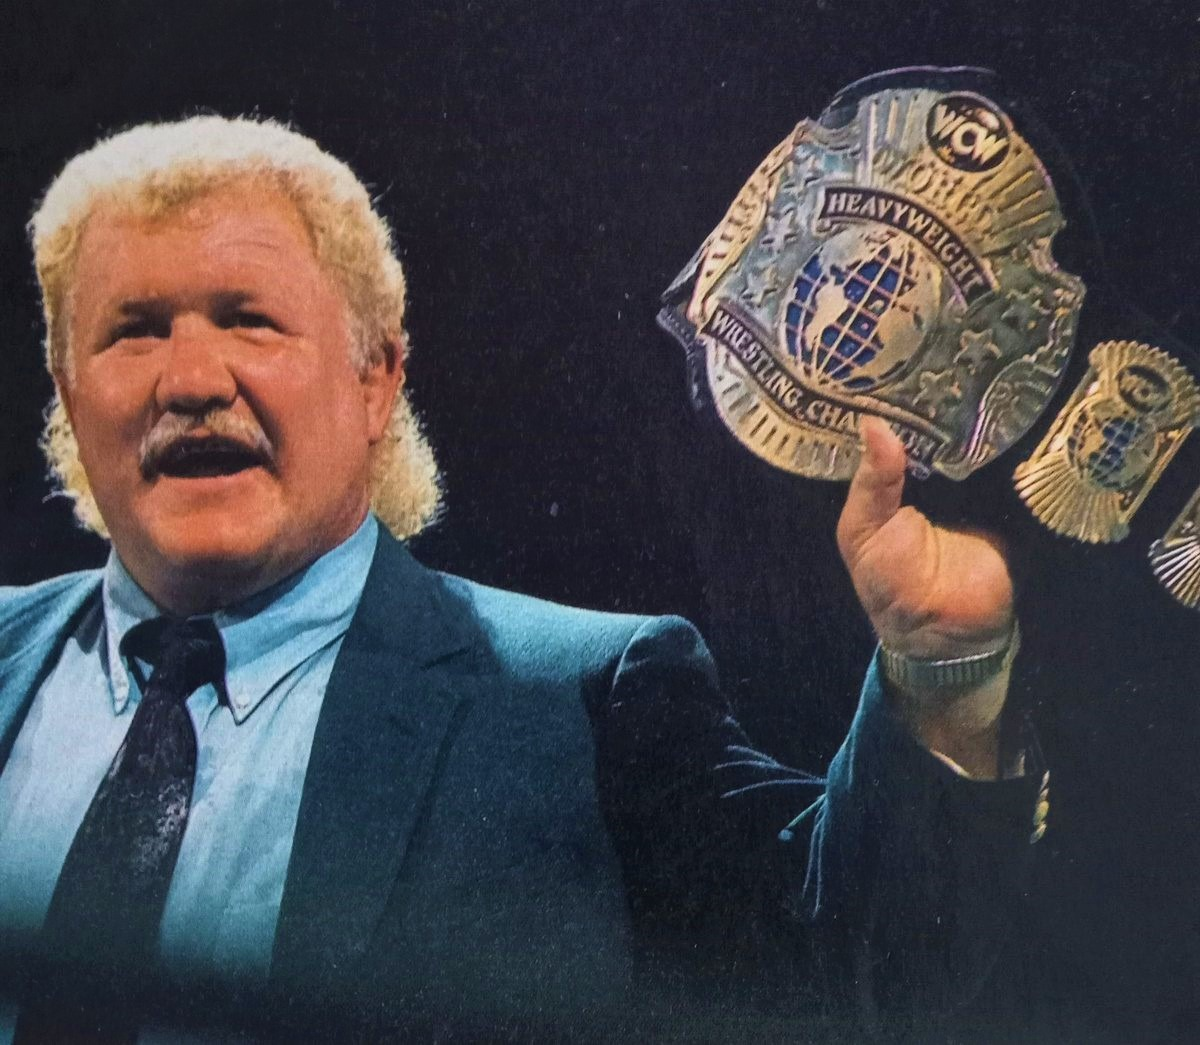 Harley Race seen here proudly holding the WCW World Championship belt who at the time was held by Big Van Vader. Vader would eventually hold it three times before leaving for WWE.